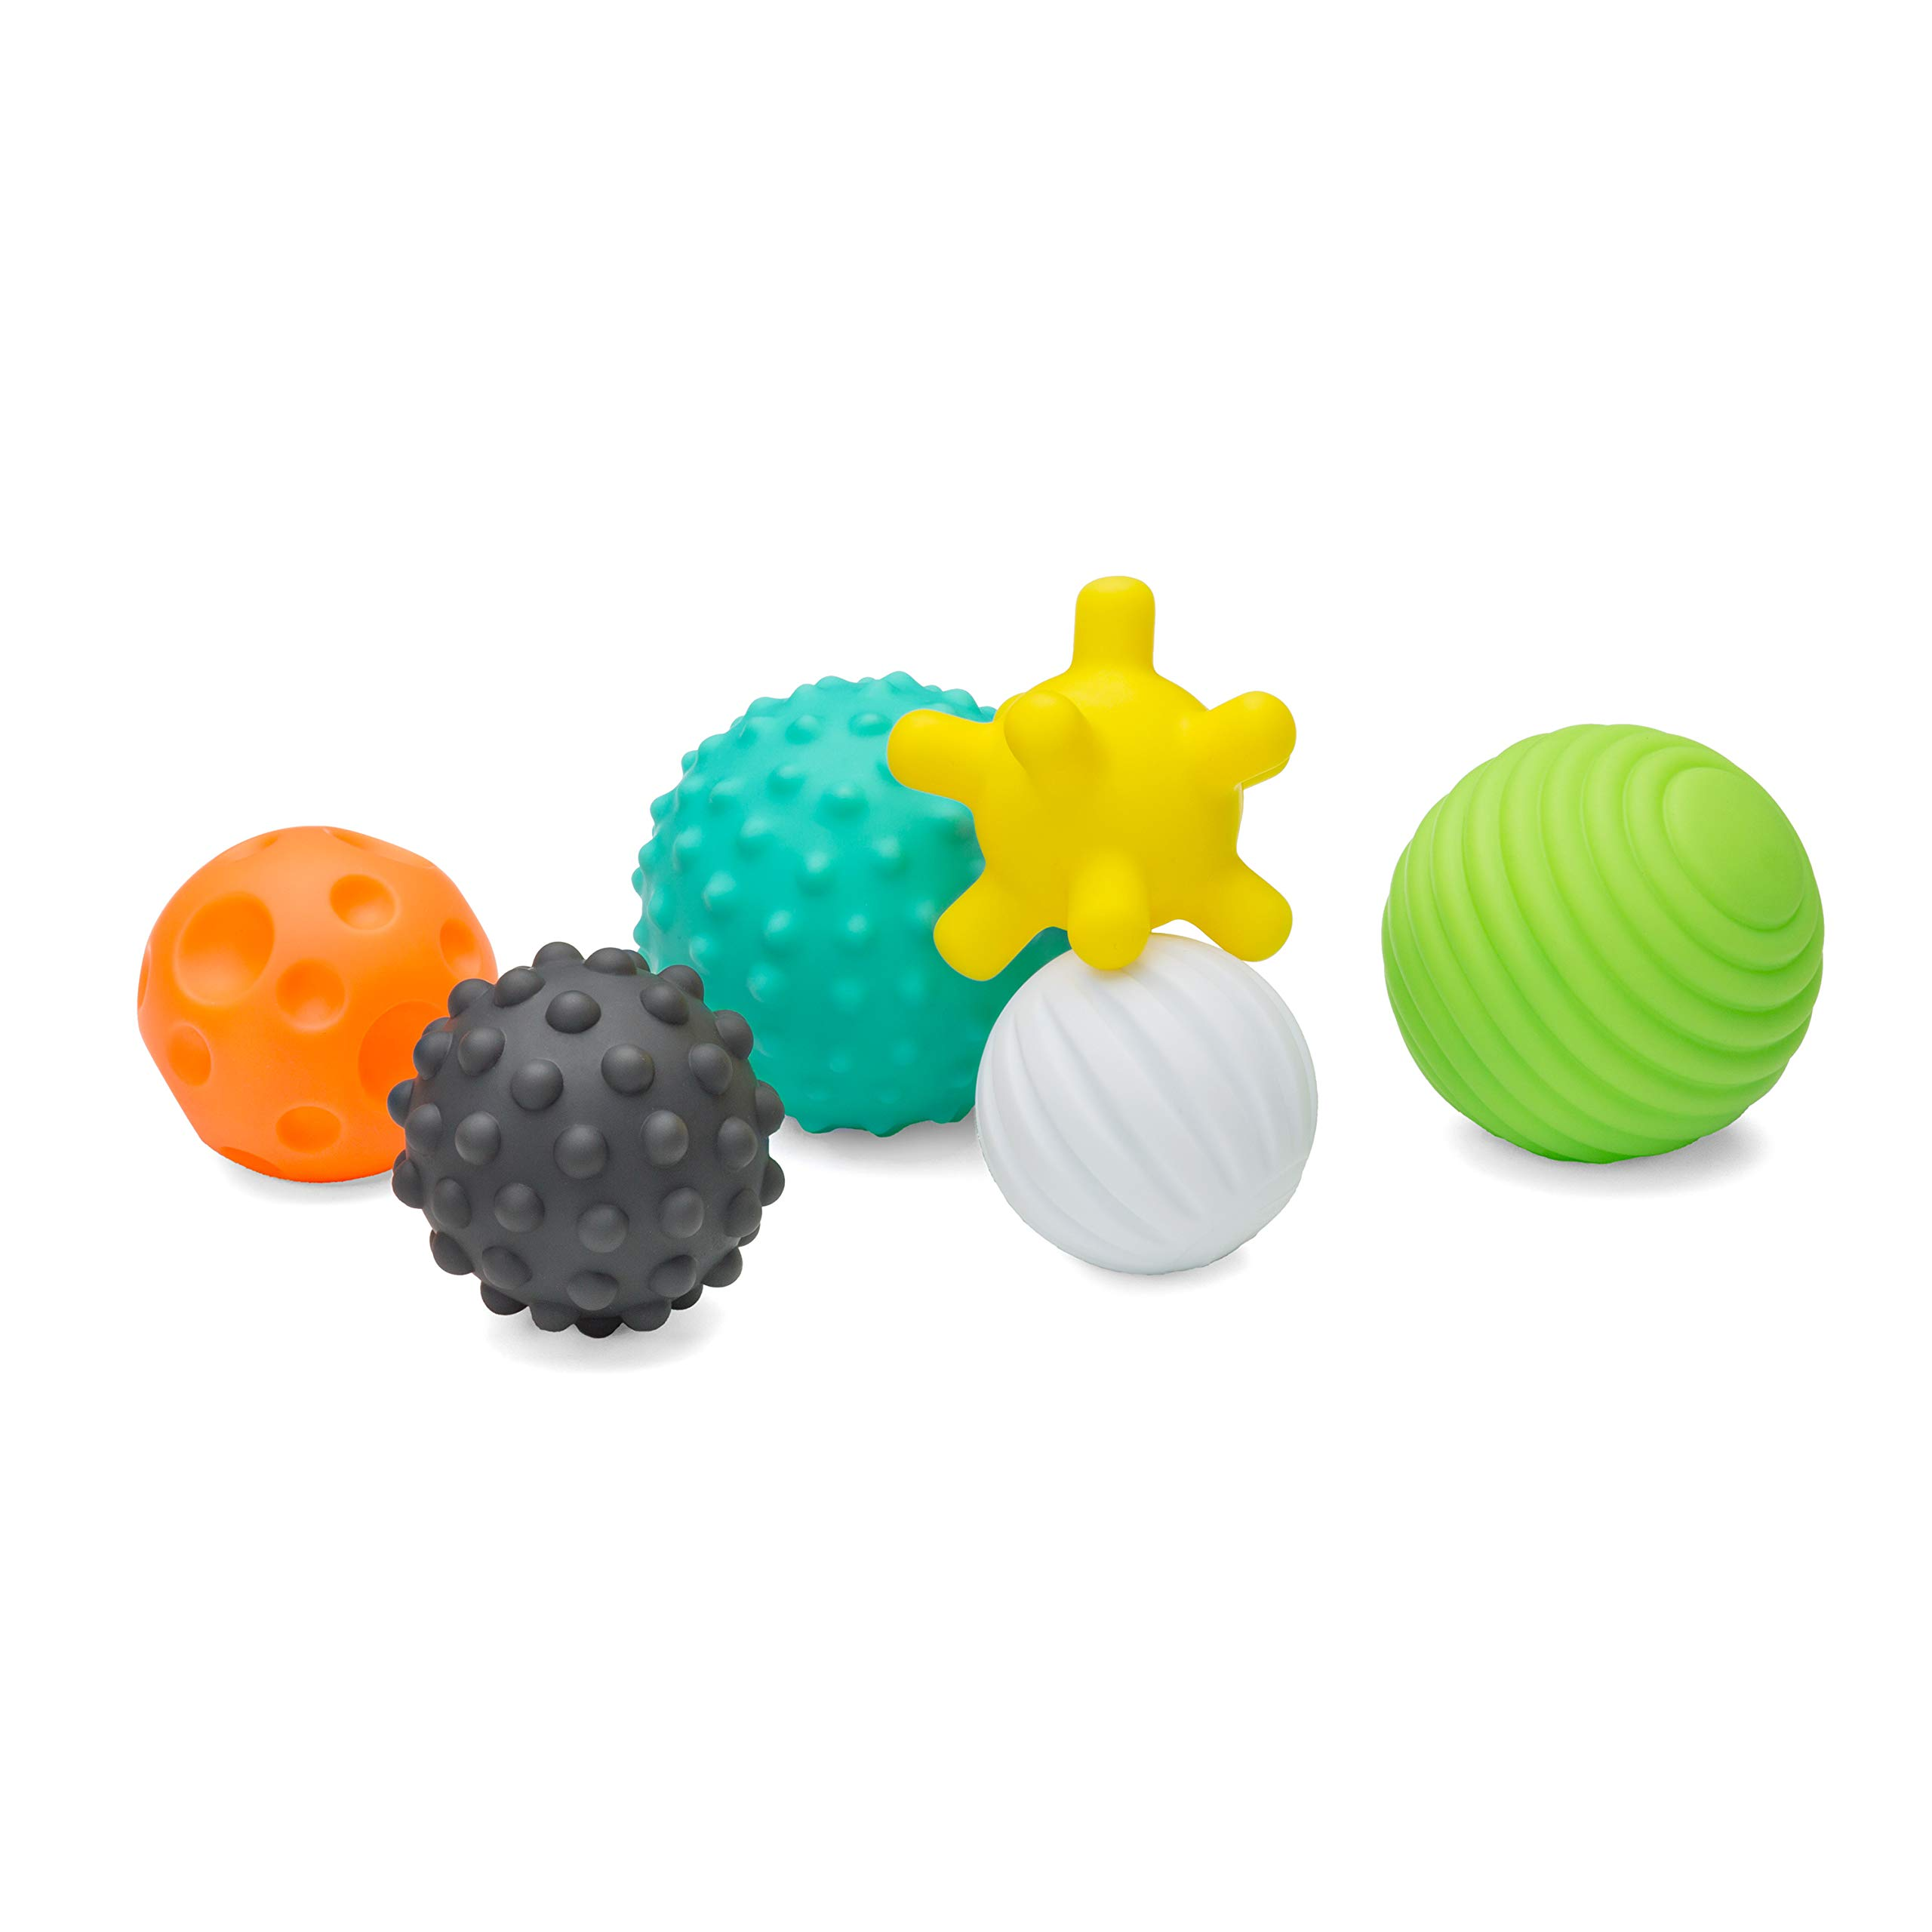 Infantino Textured Multi Ball Set - Textured Ball Set Toy for Sensory Exploration and Engagement for Ages 6 Months and up, 6 Piece Set